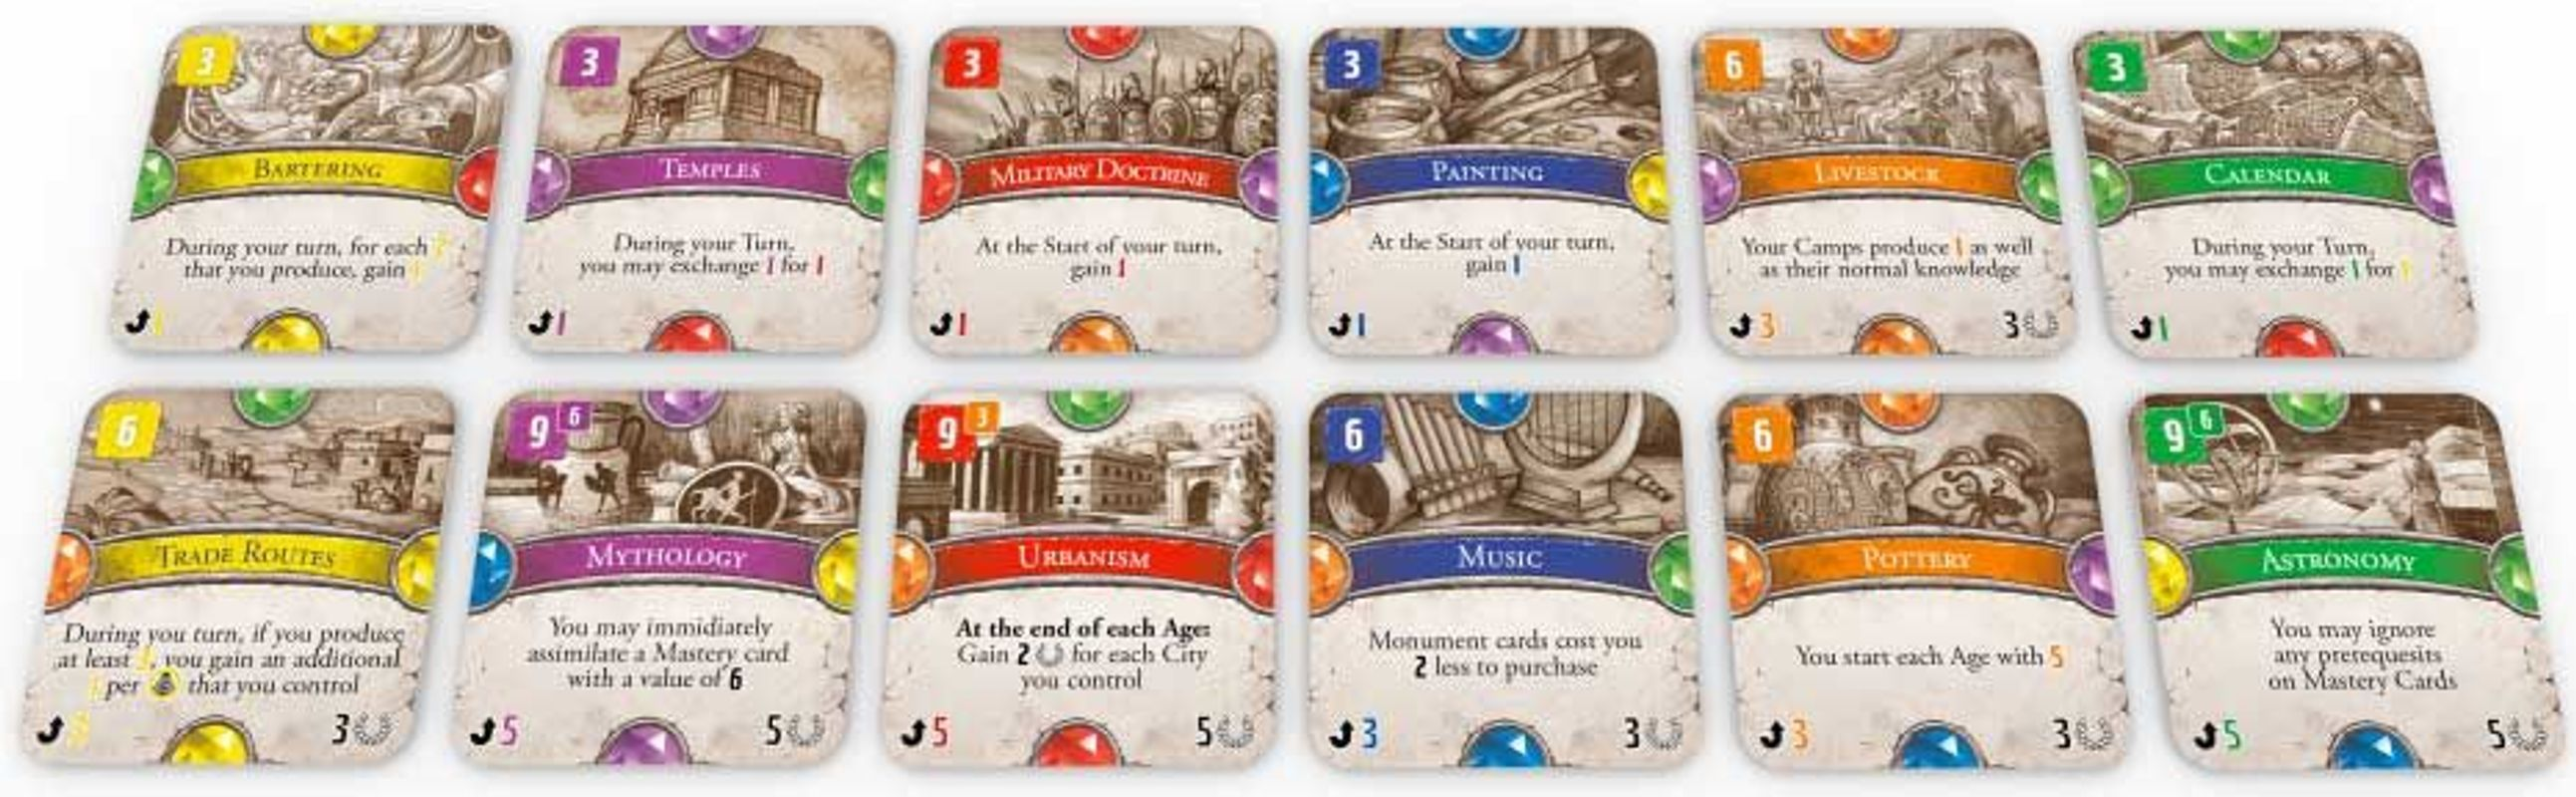 Dominations: Road to Civilization cards